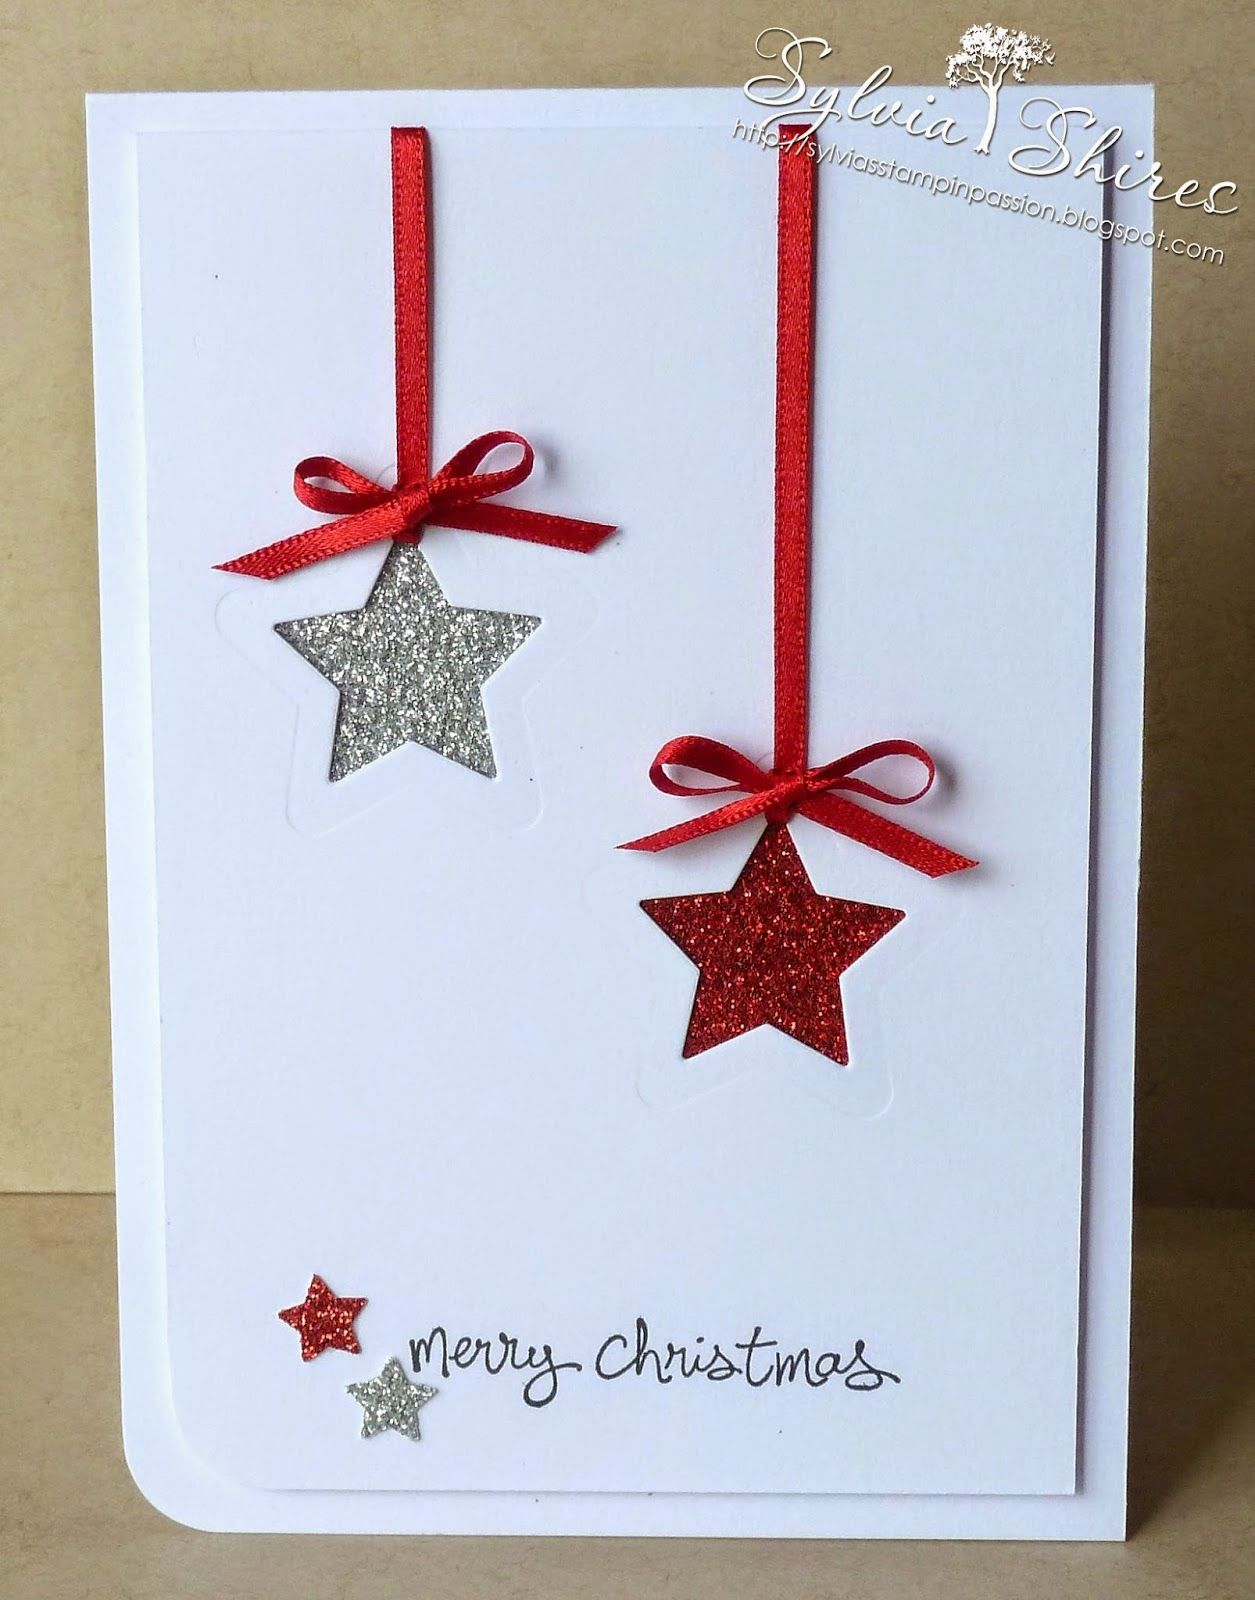 Sylvias stampin passion christmas cheer at stampin up star sylvias stampin passion christmas cheer at stampin up star framelits and good greetings kristyandbryce Images